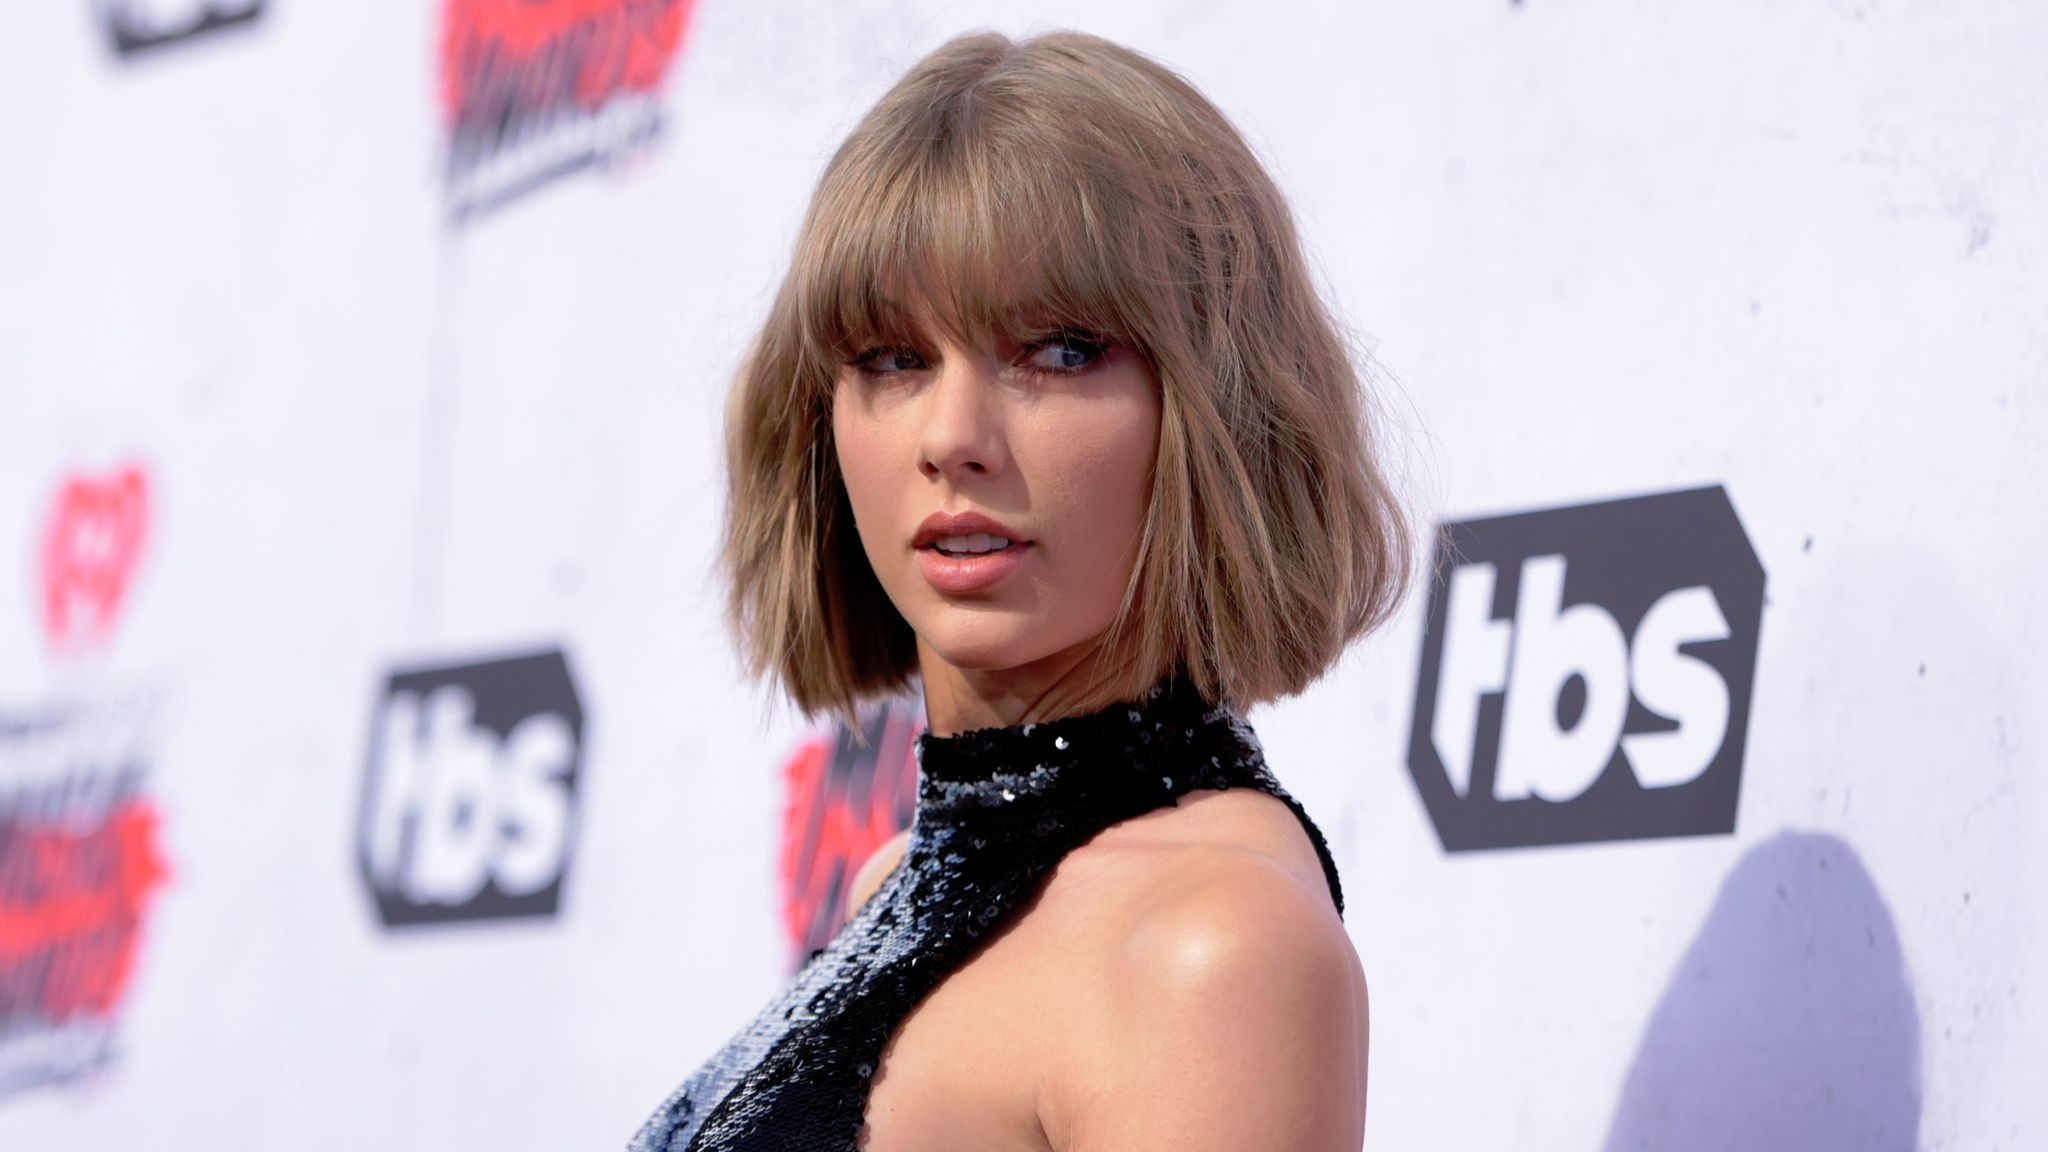 Taylor Swift says DJ subjected her to long, 'horrifying' grope